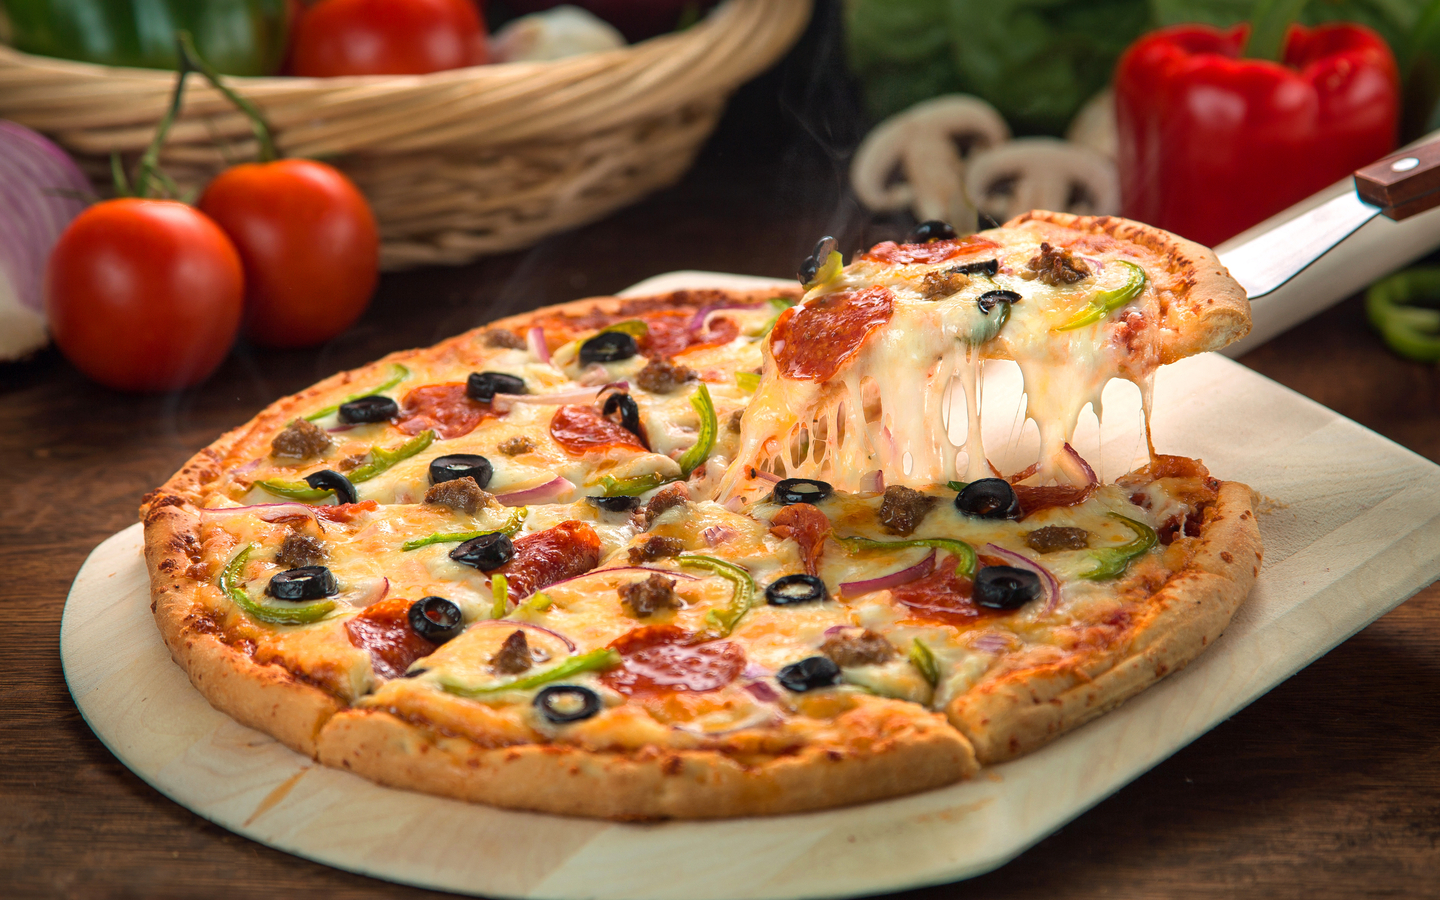 Eataly offers delicious and mouth-watering pizzas in town